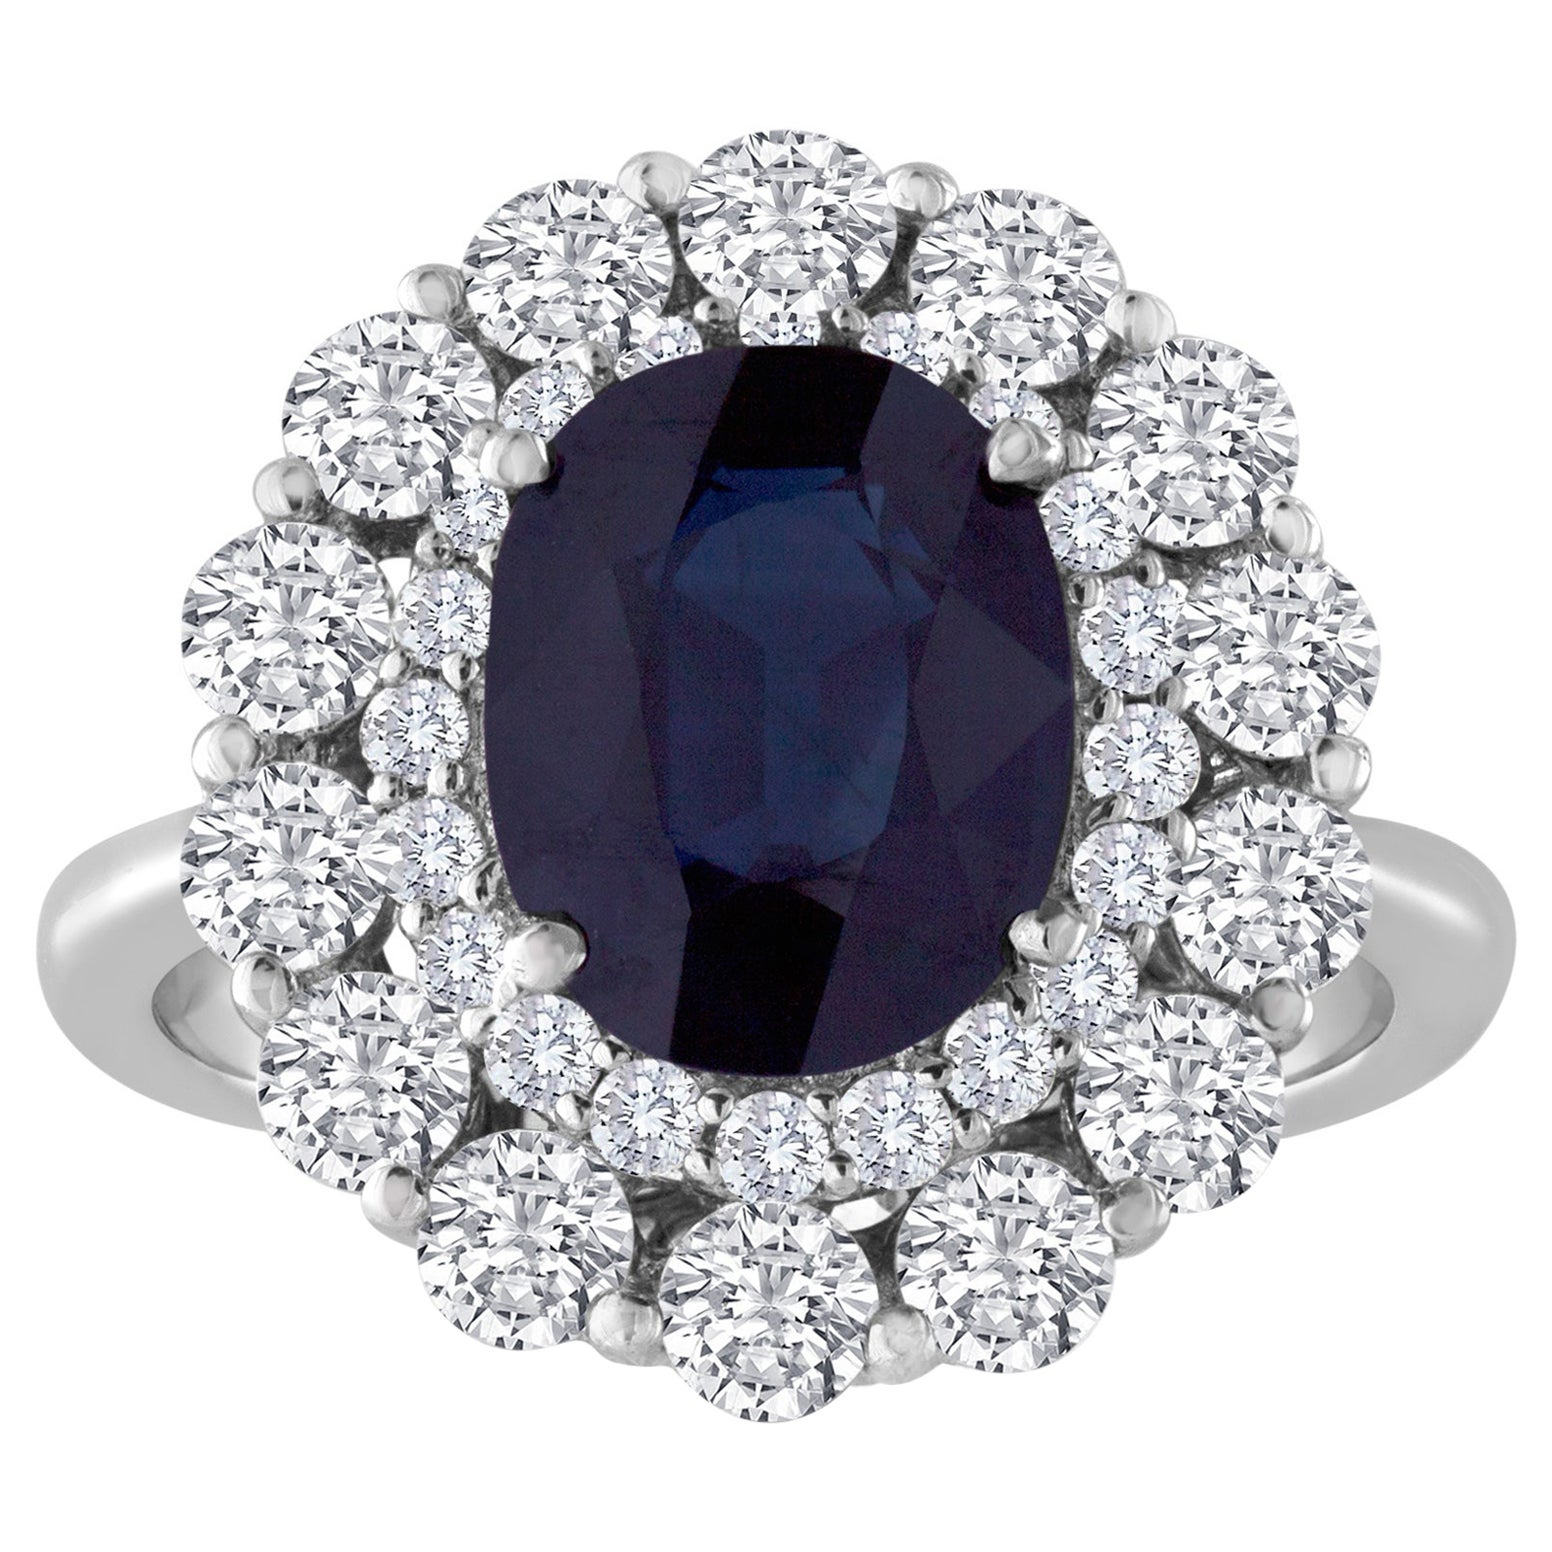 Certified No Heat 3.22 Carat Oval Blue Sapphire Diamond Gold Ring